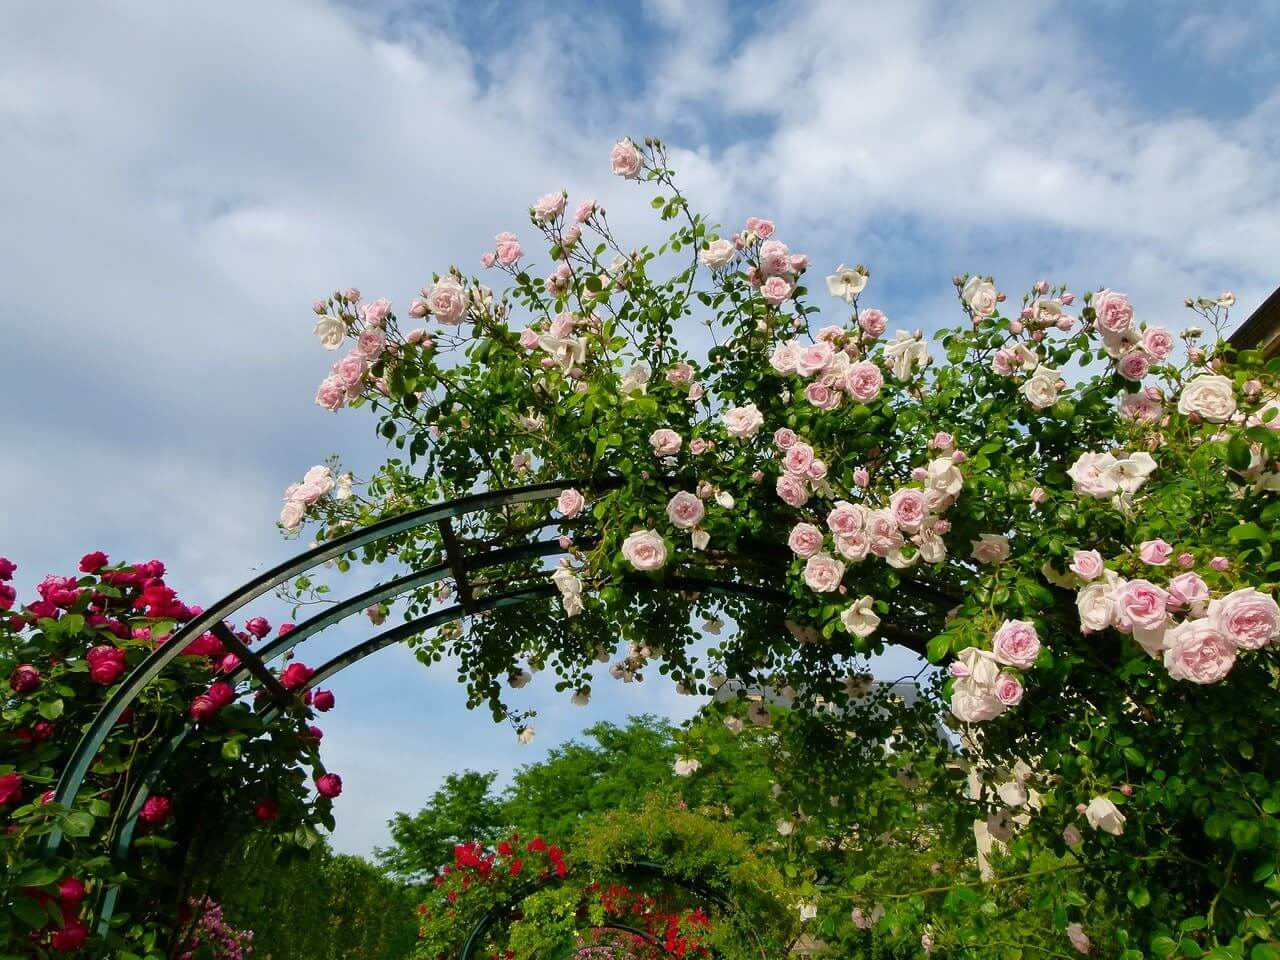 arches with climbing roses